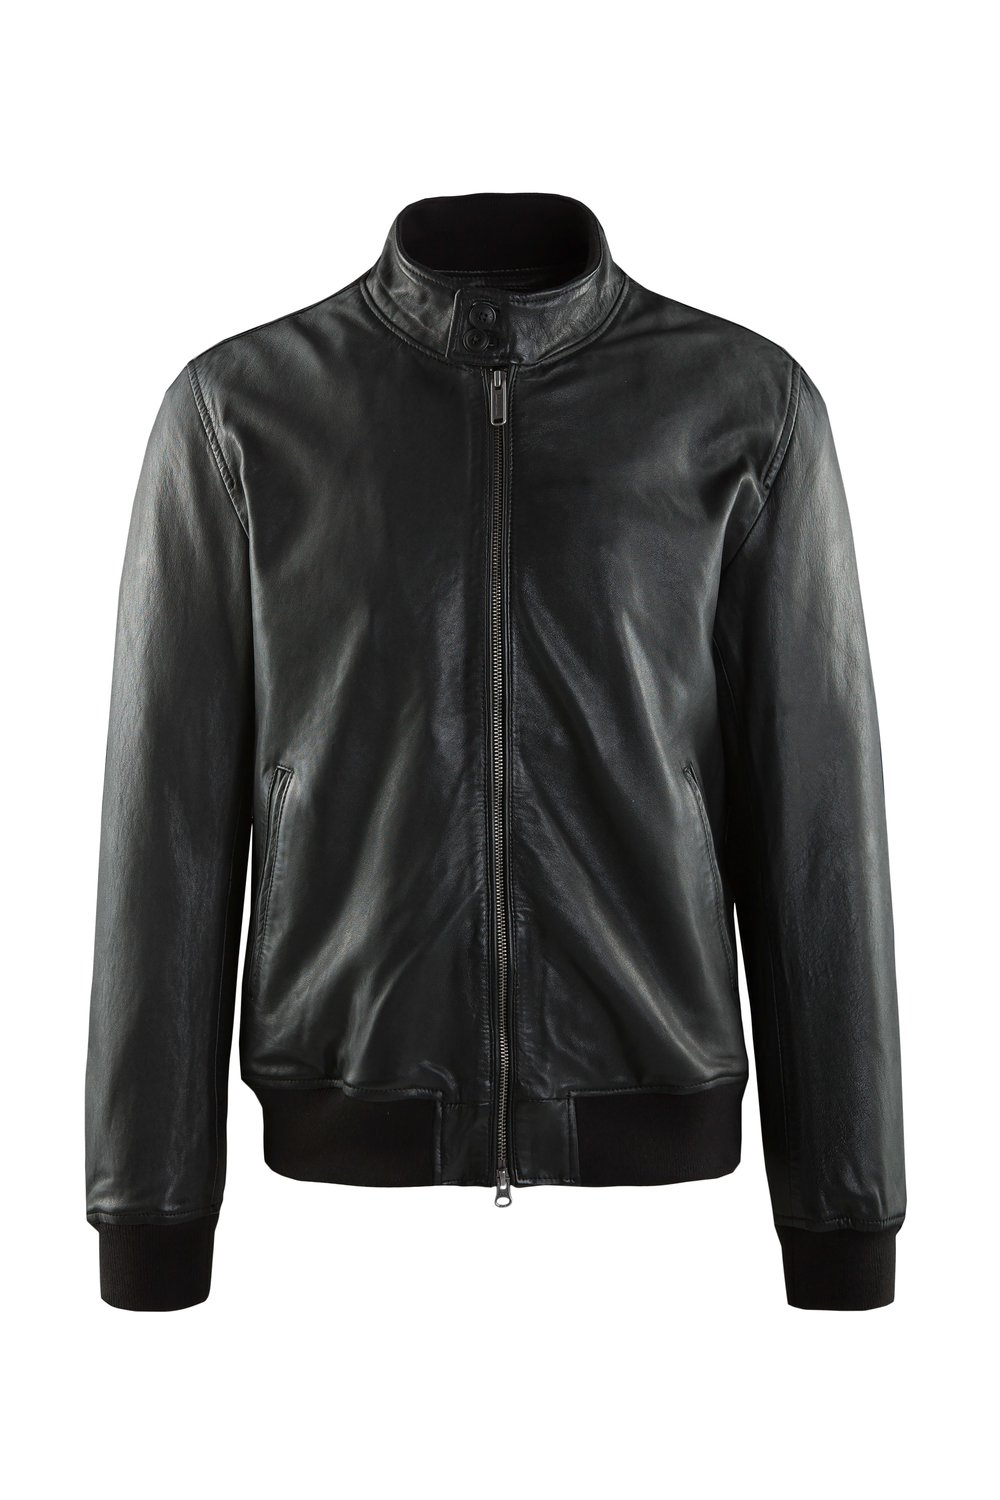 Friz leather bomber jacket